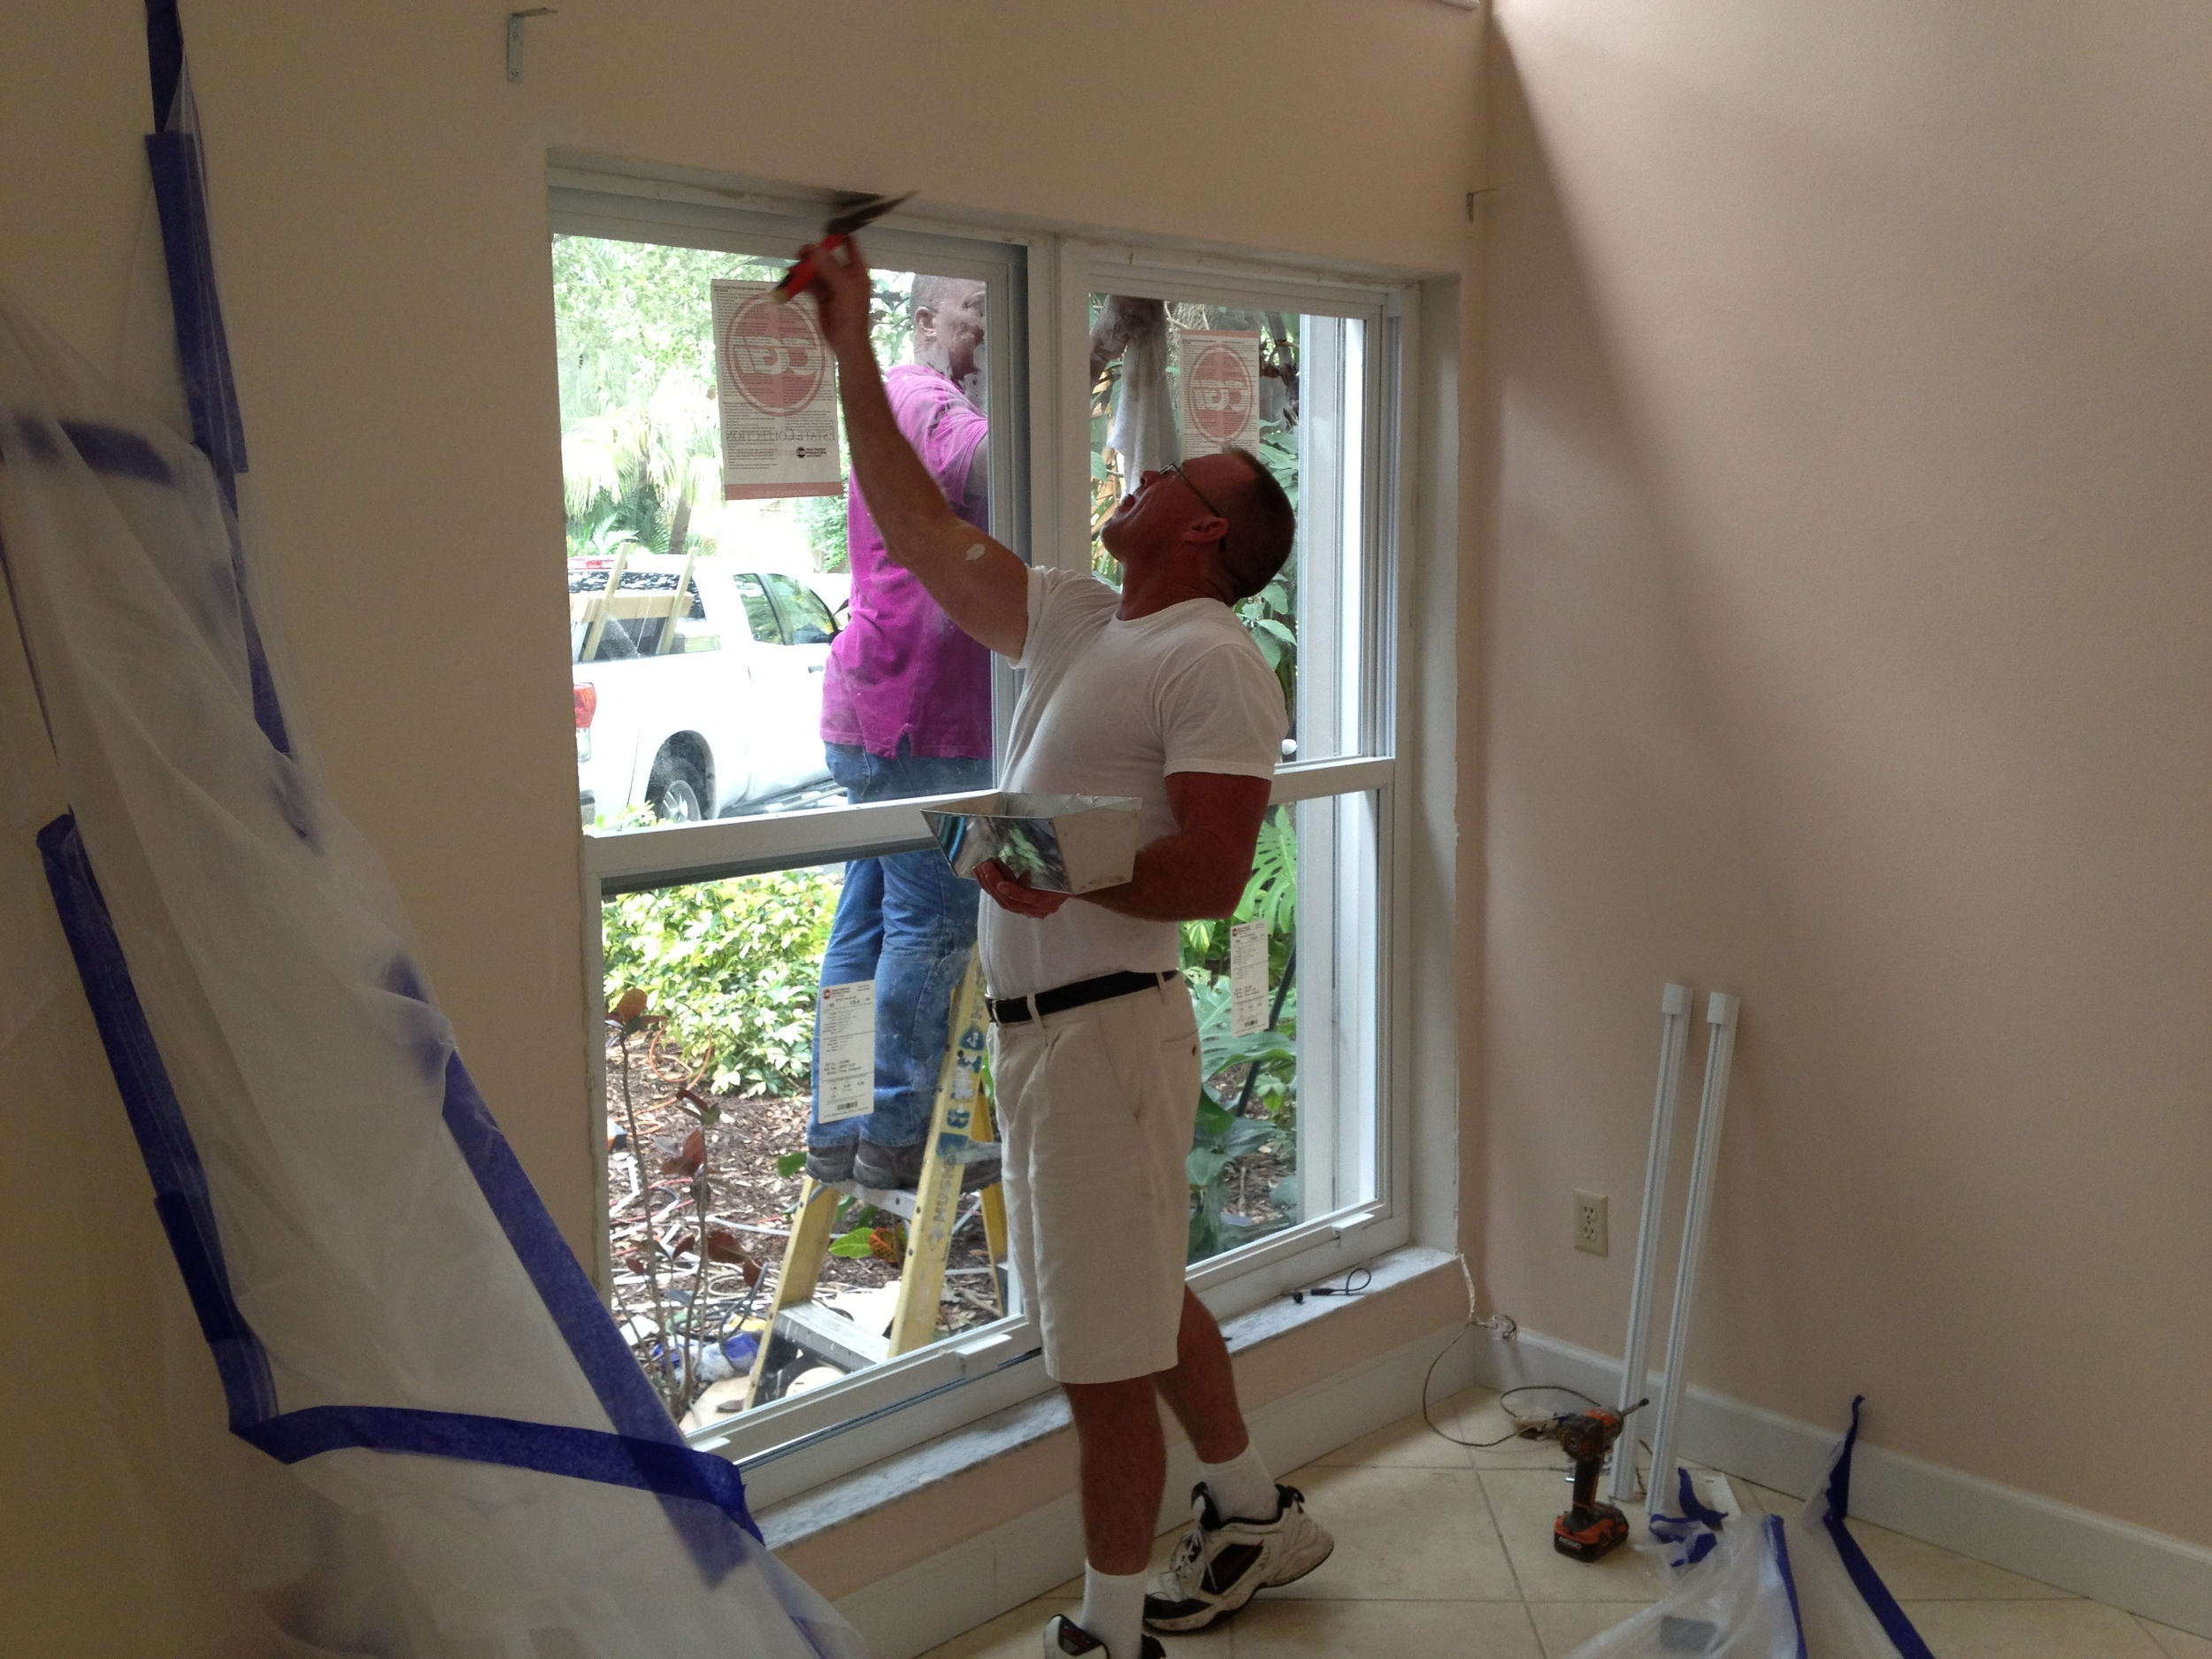 Paul Bourque patching the interior drywall after installing new windows.